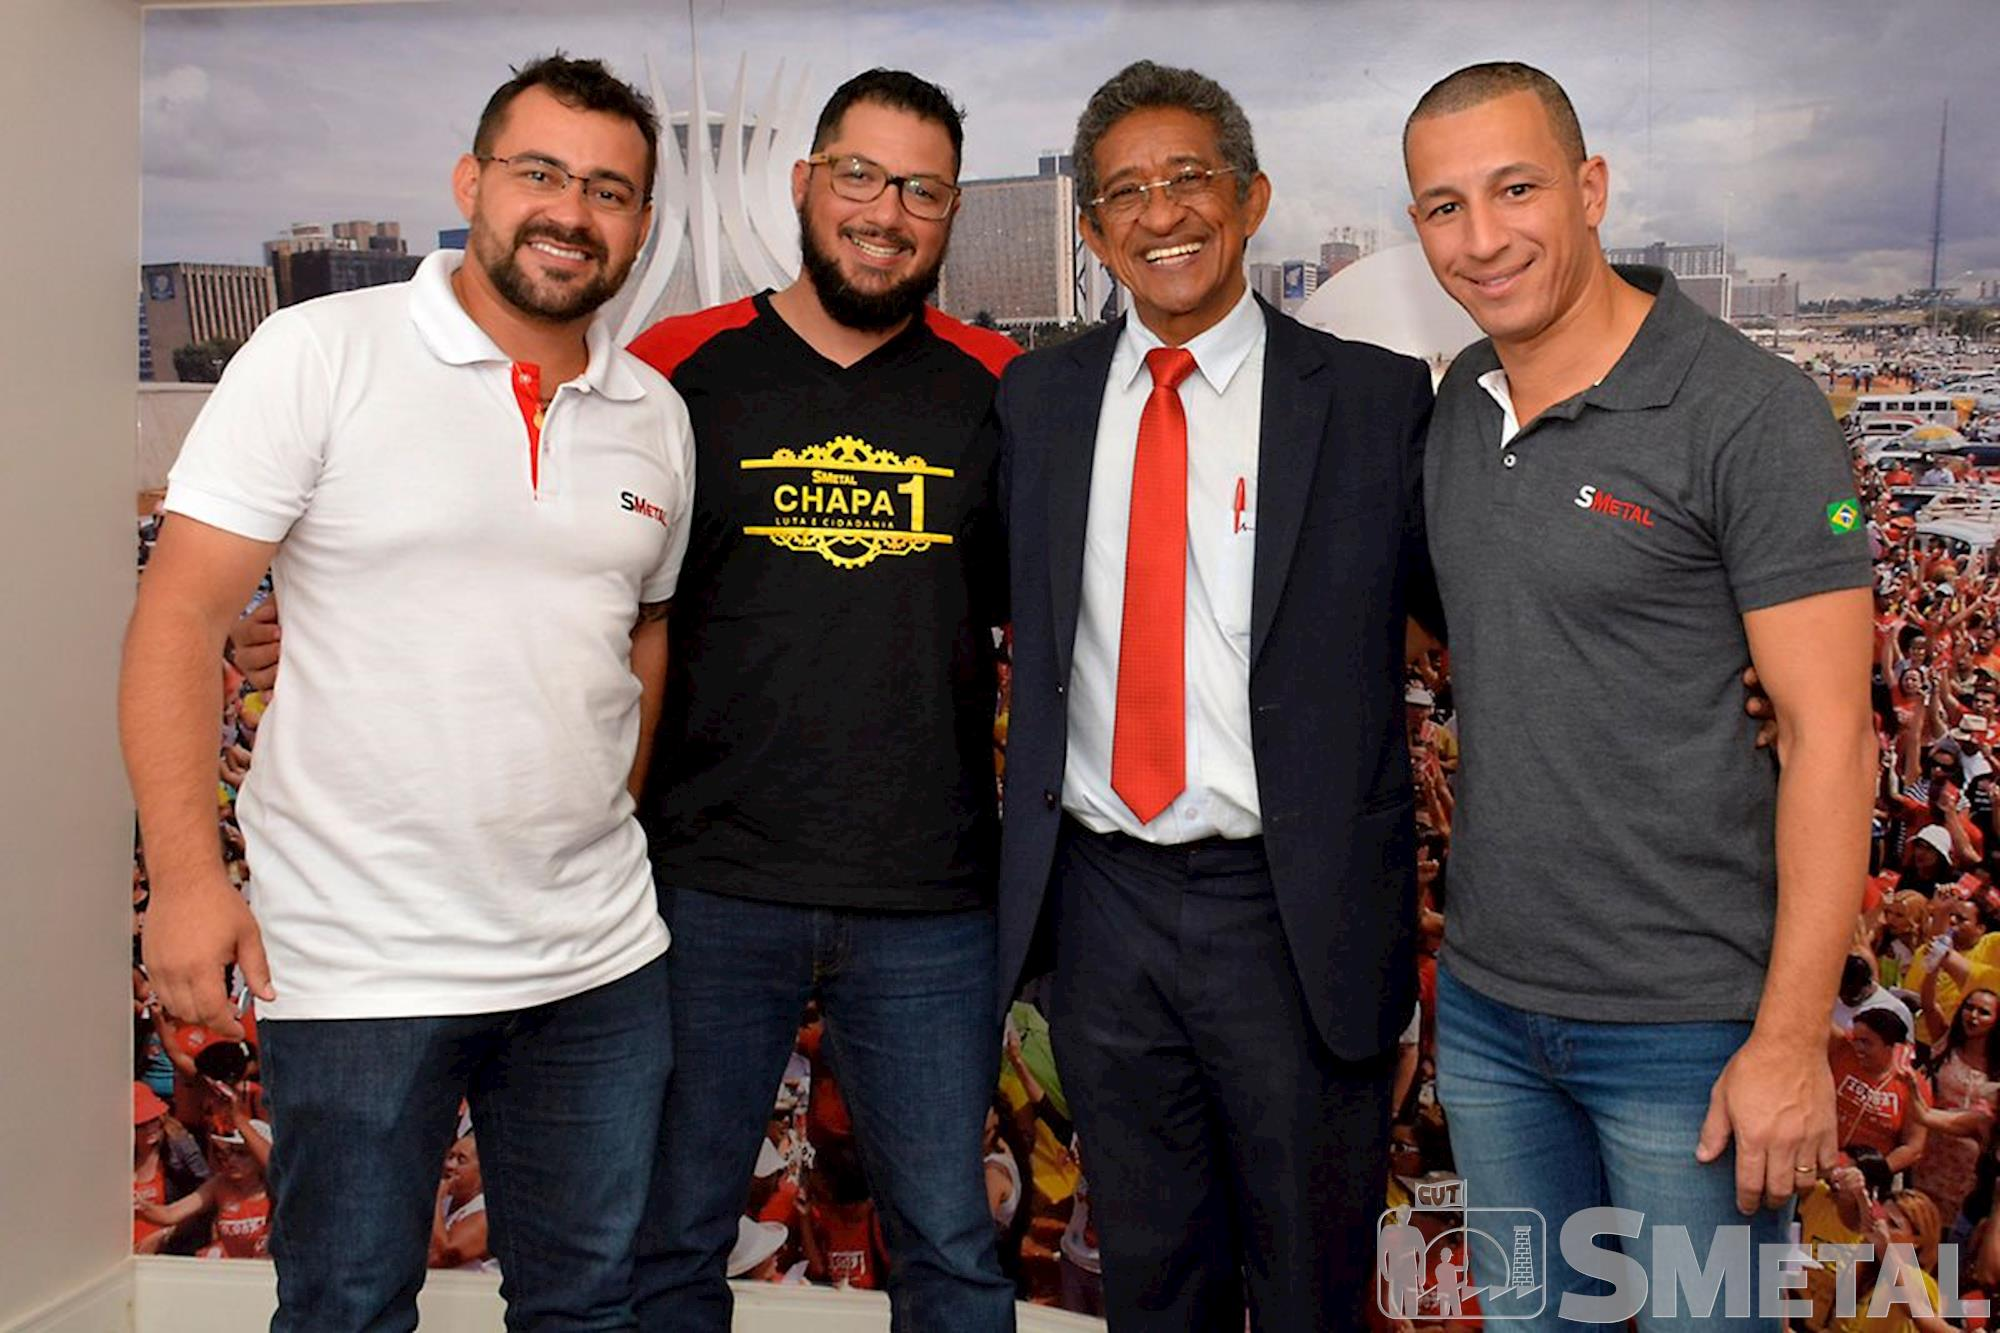 Posse da diretoria do SMetal - triênio 2017 a 2020